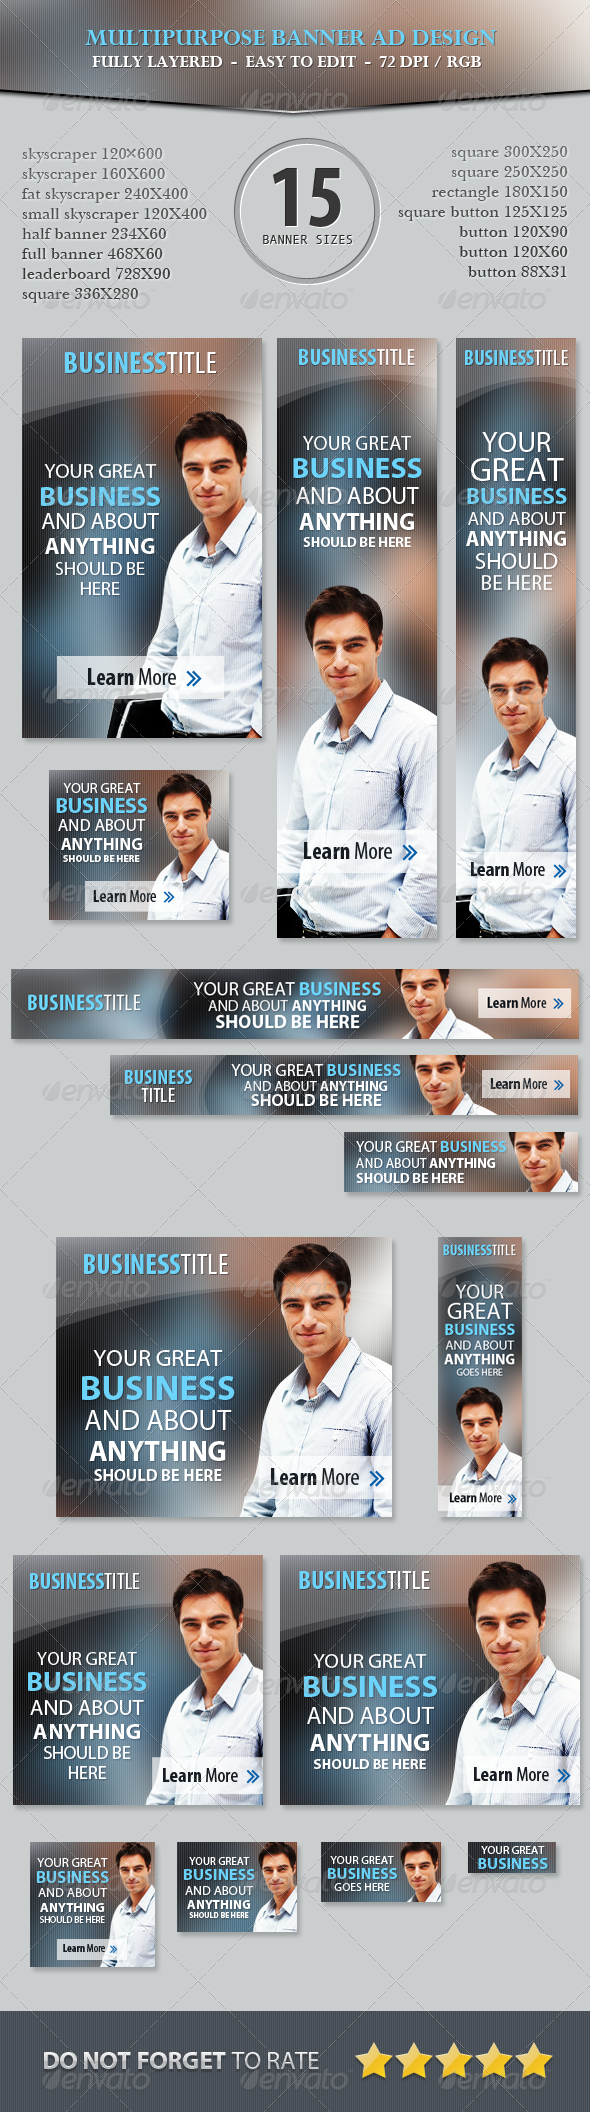 Multipurpose Business Banner ad Design - Banners & Ads Web Elements